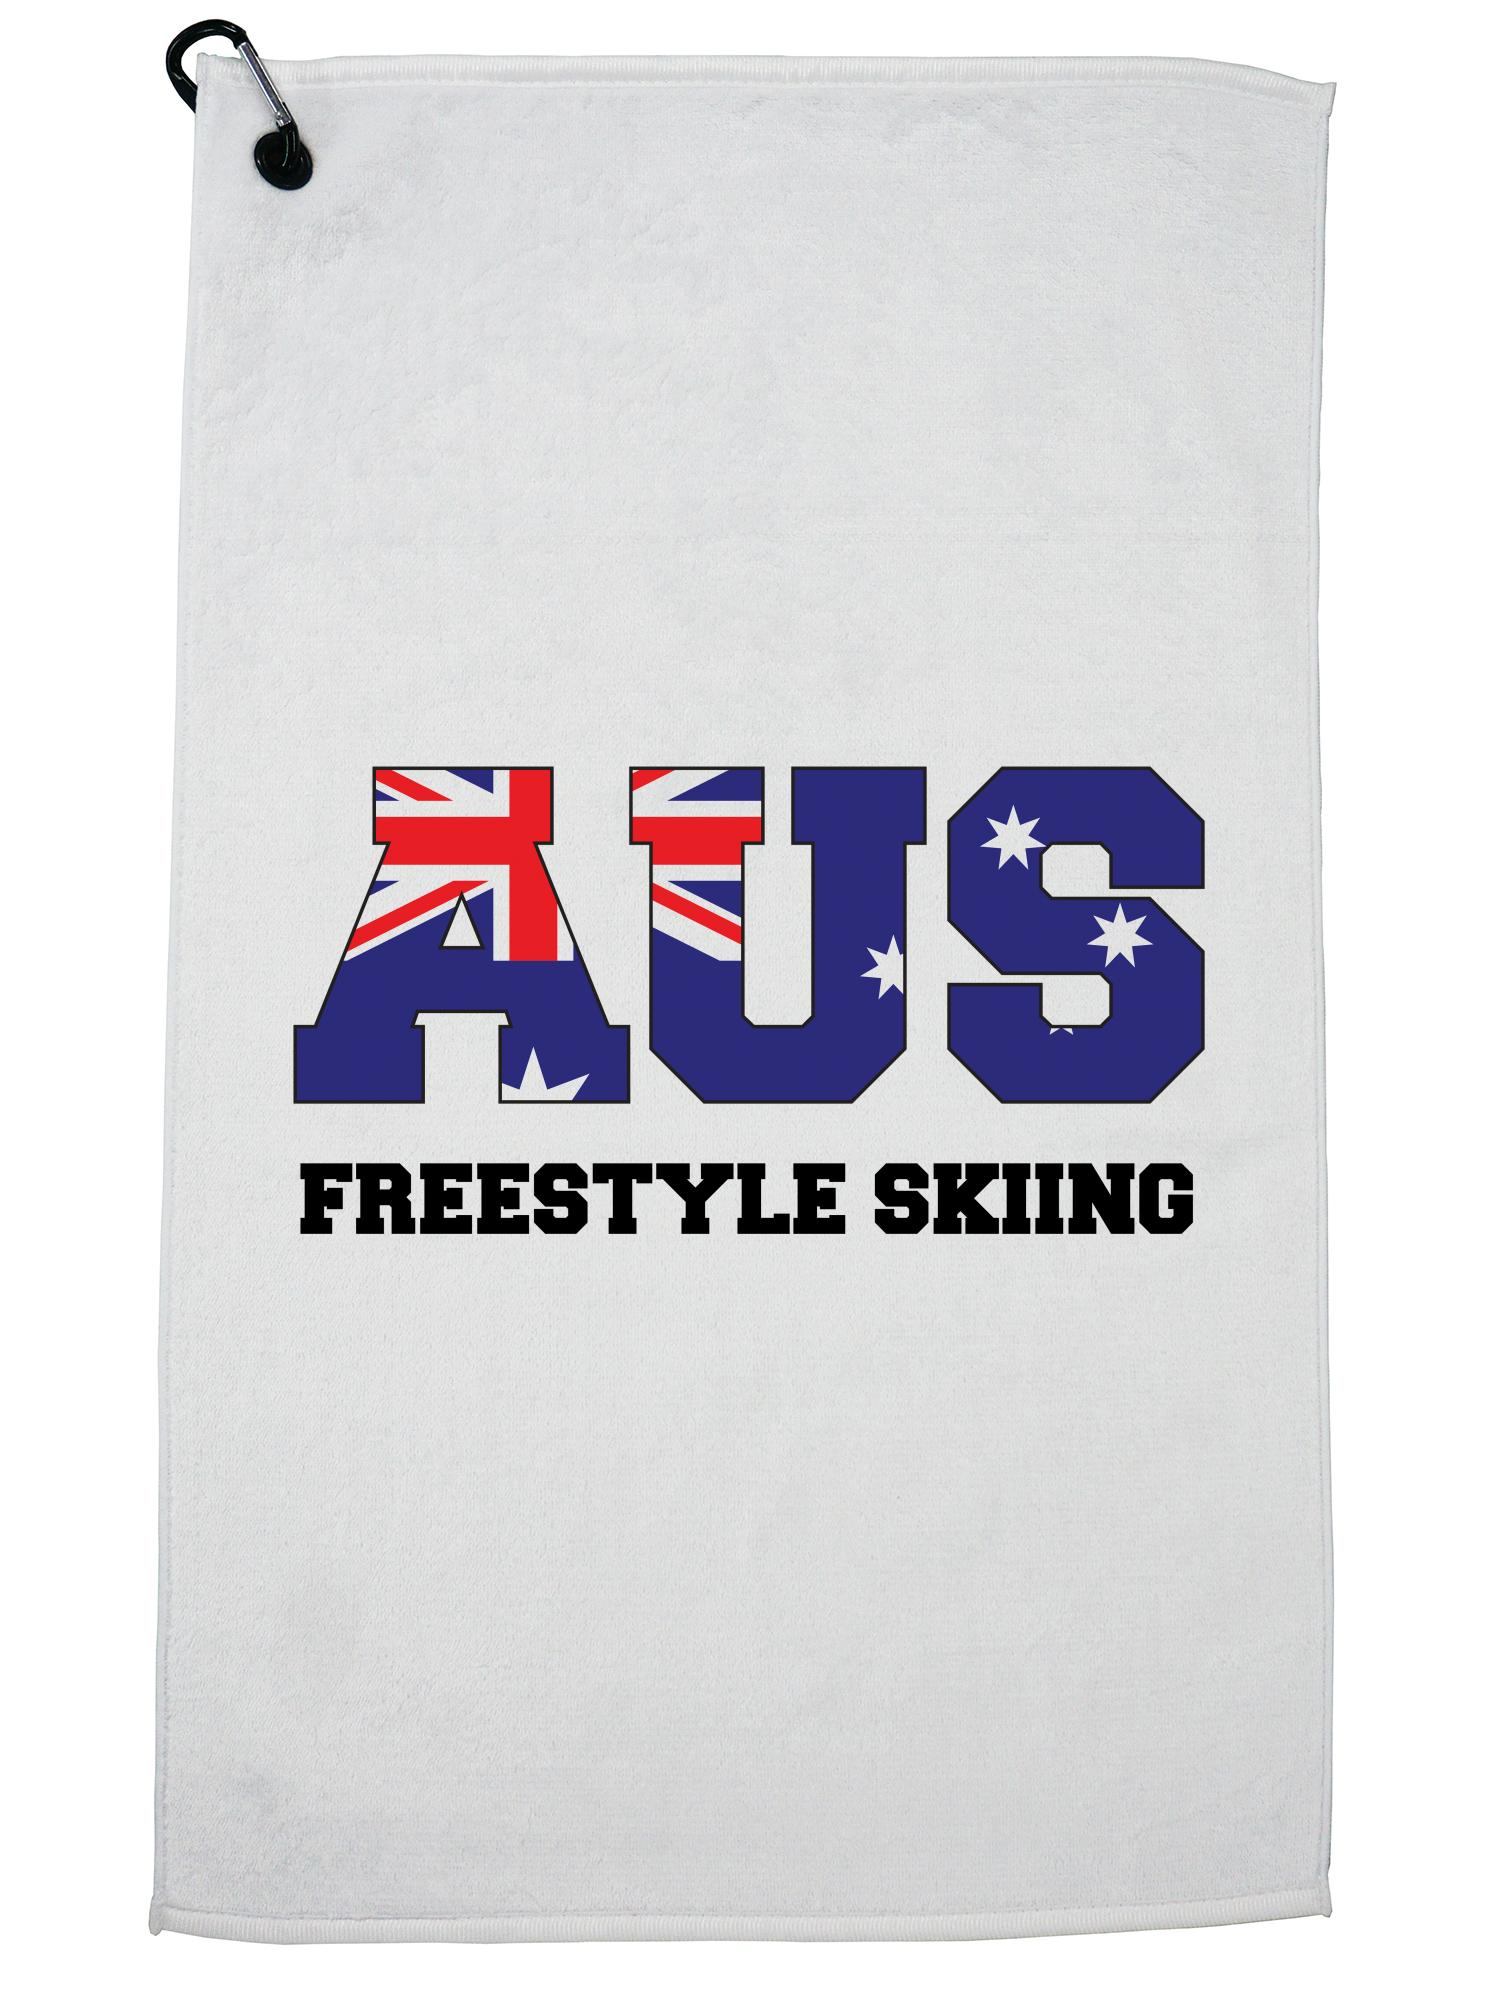 Australia Freestyle Skiing Winter Olympic Korea Flag Golf Towel with Carabiner Clip by Hollywood Thread